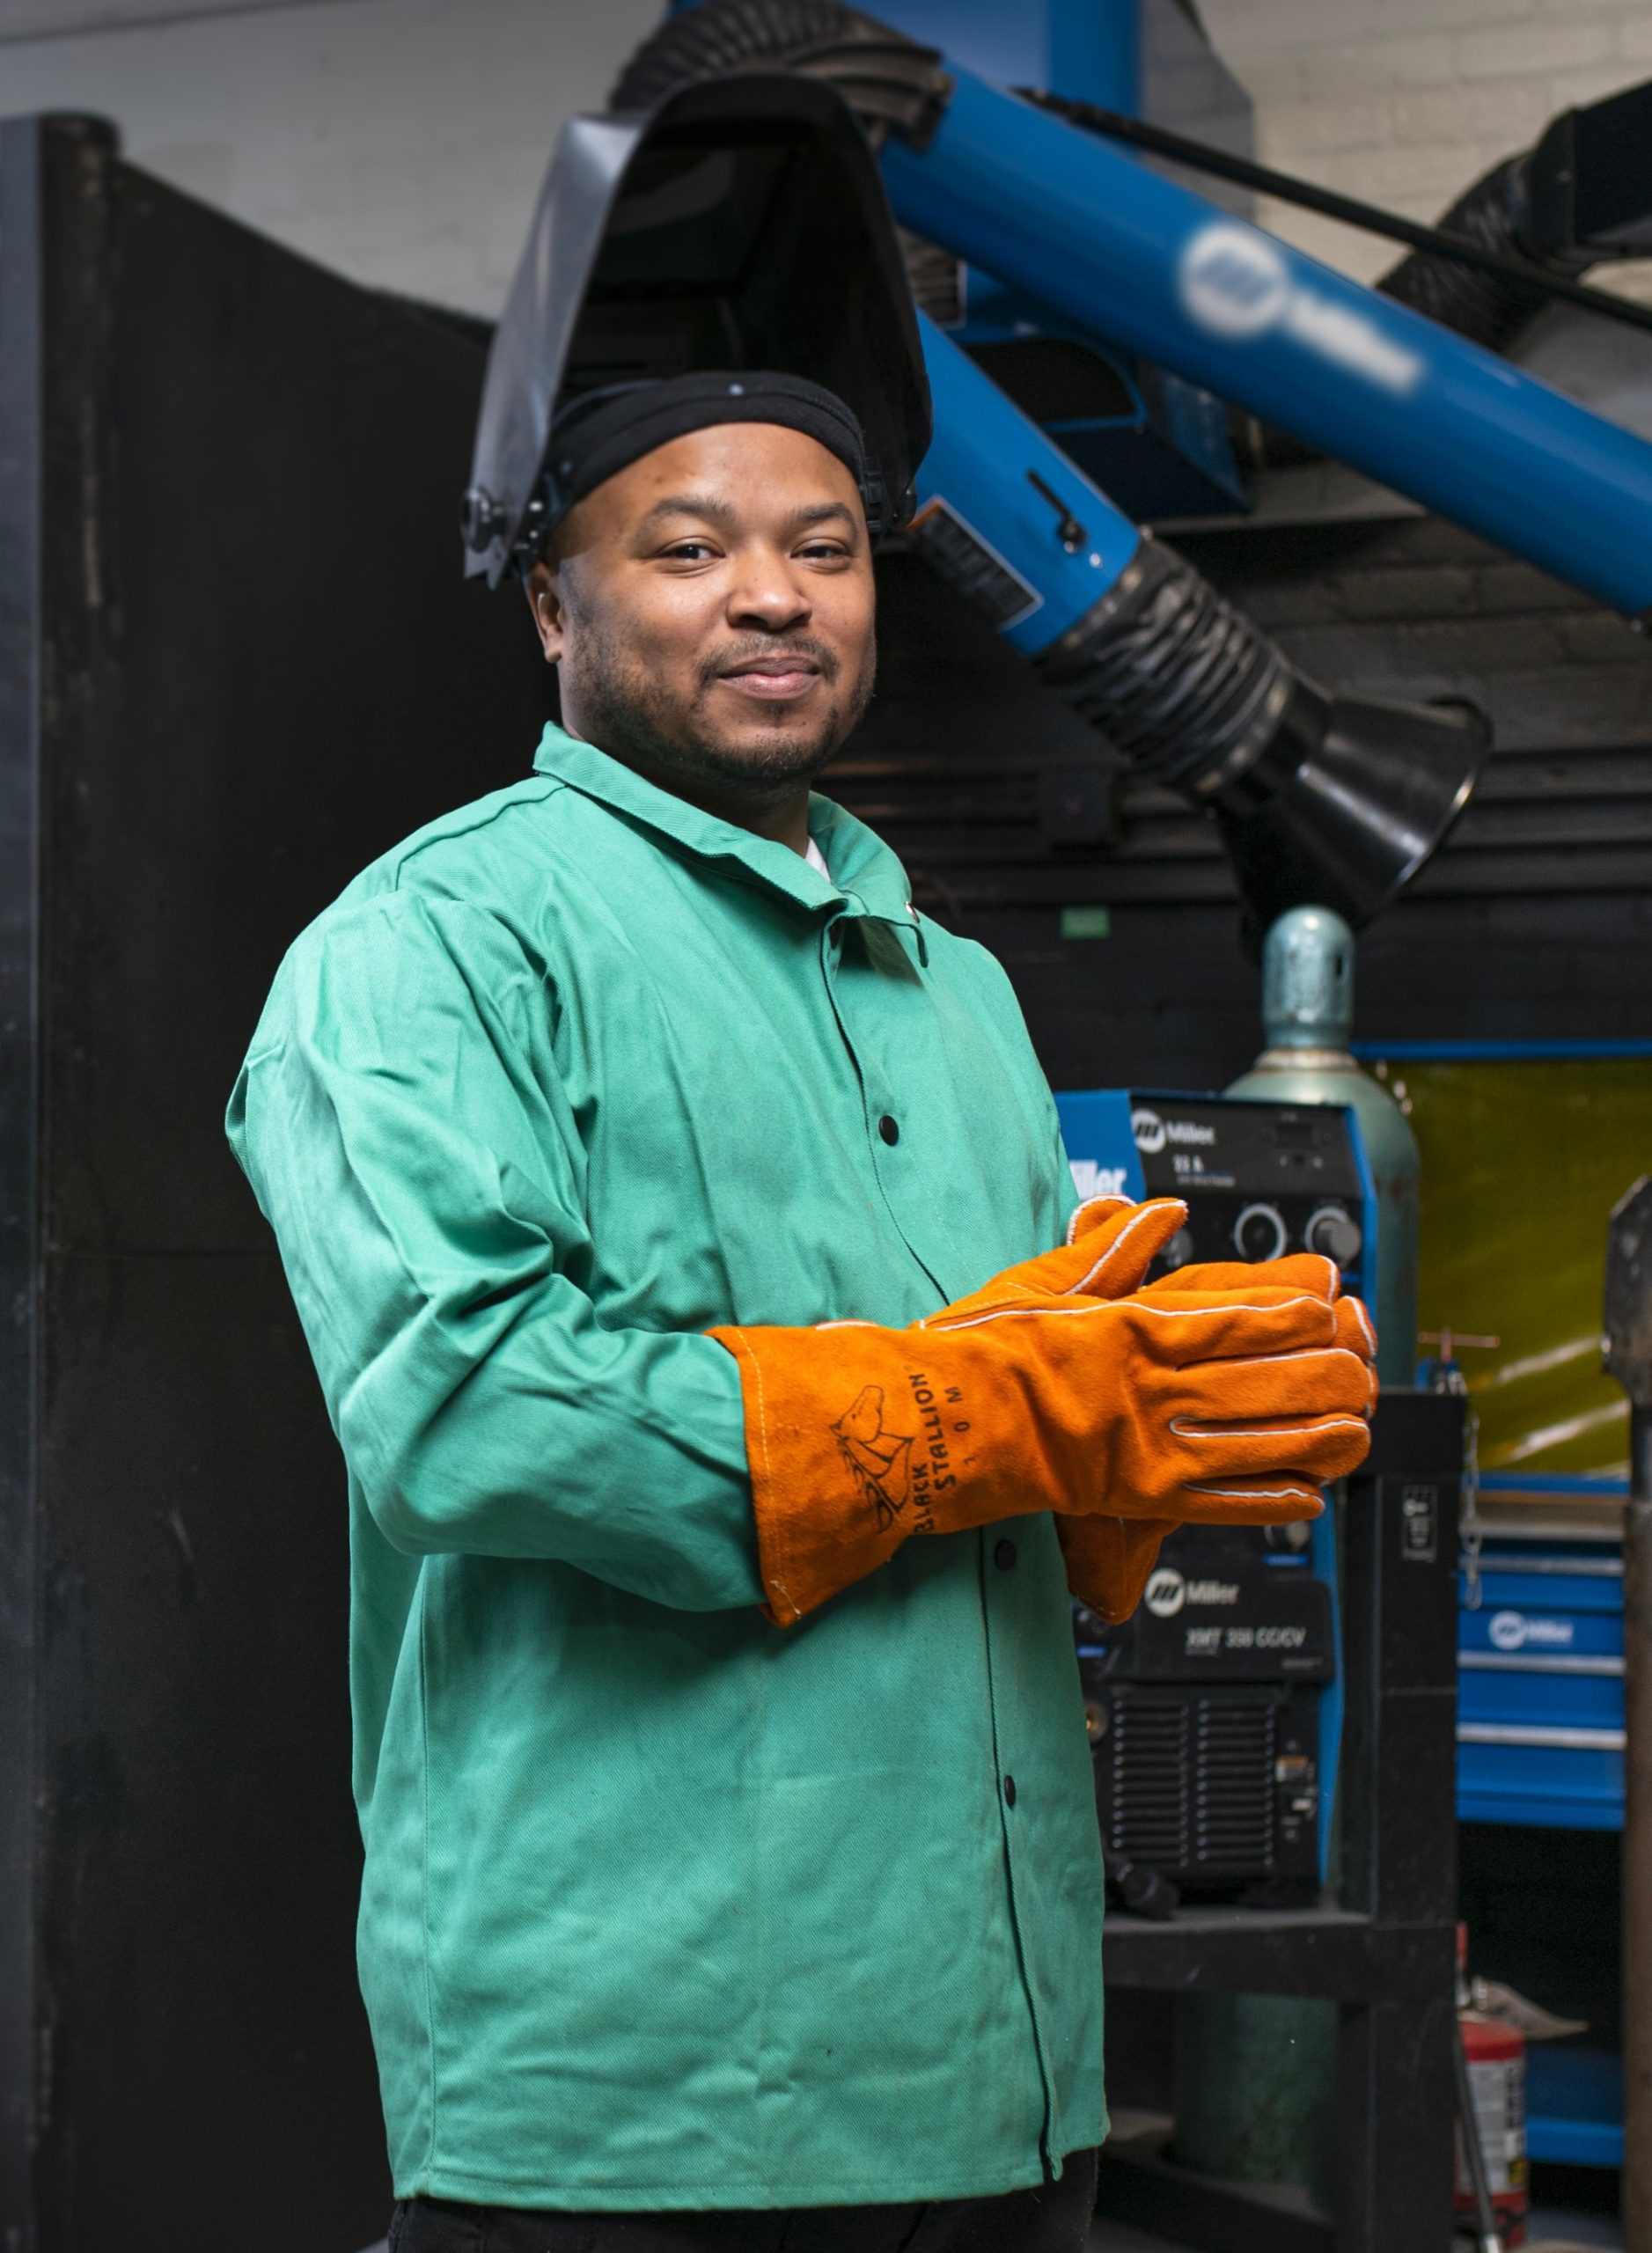 A young black man wearing a welder's mask and a green workman's suit, smiling